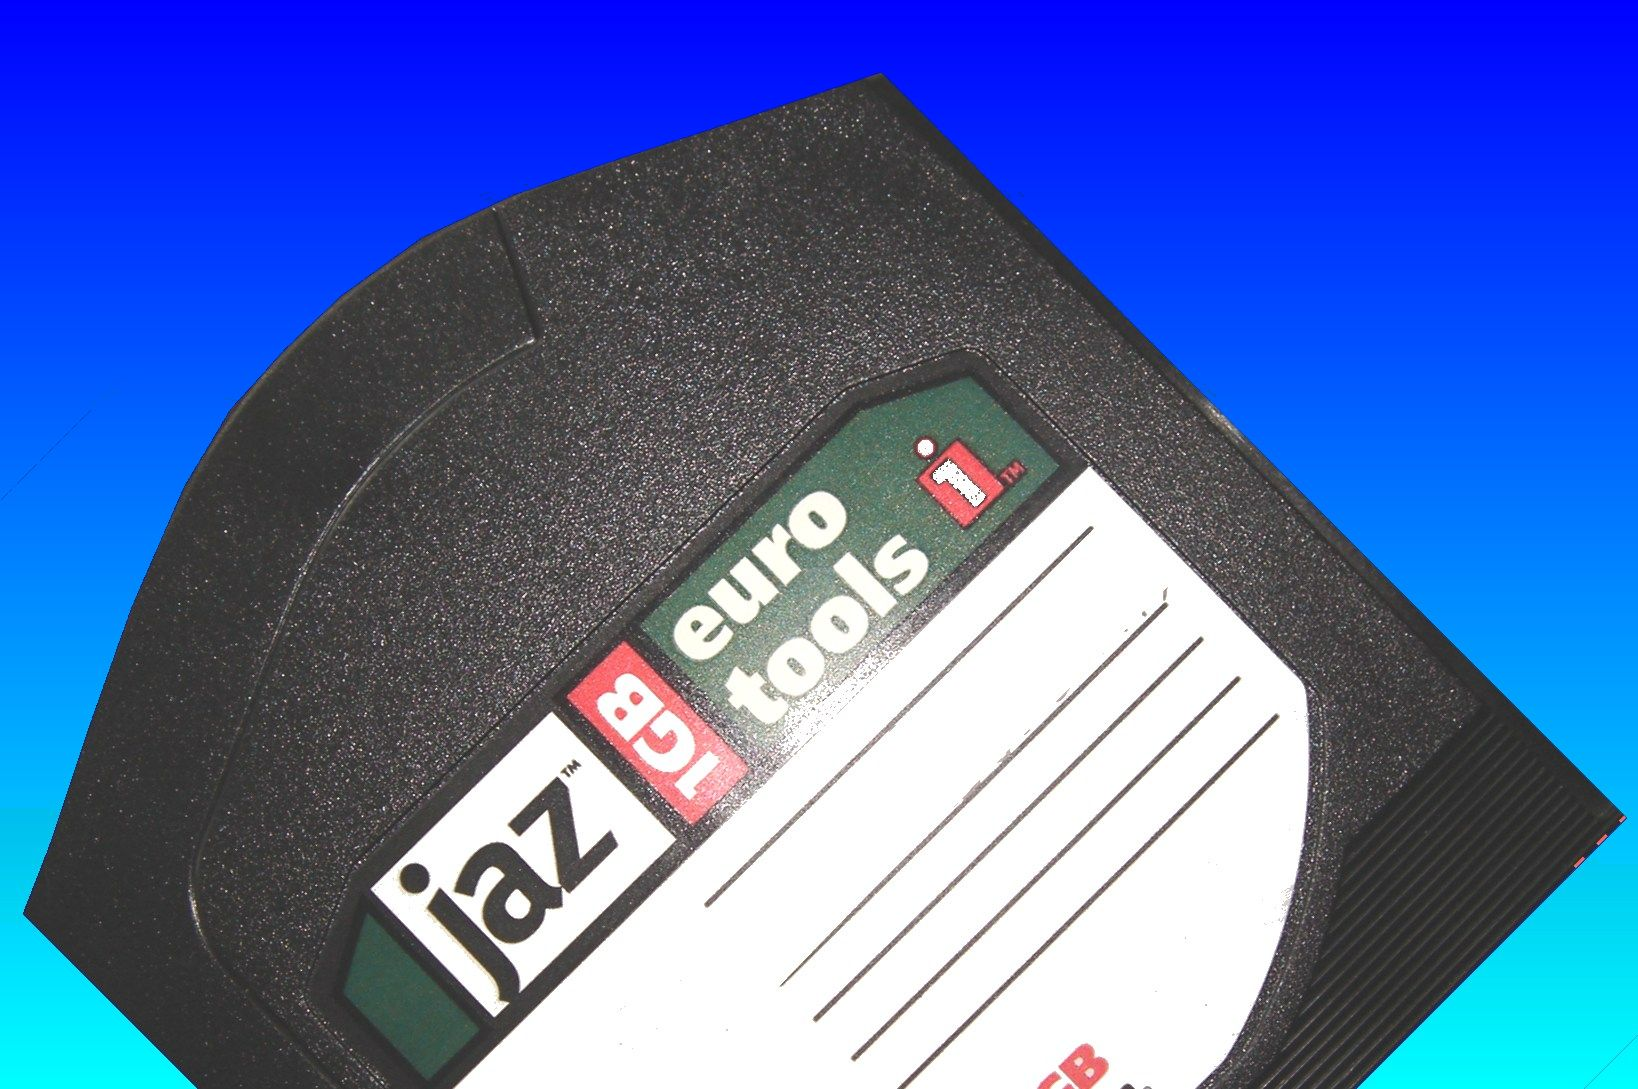 This 1GB Jaz disk was used in an Apple Mac and sent to us for transferring the data to DVD or USB.